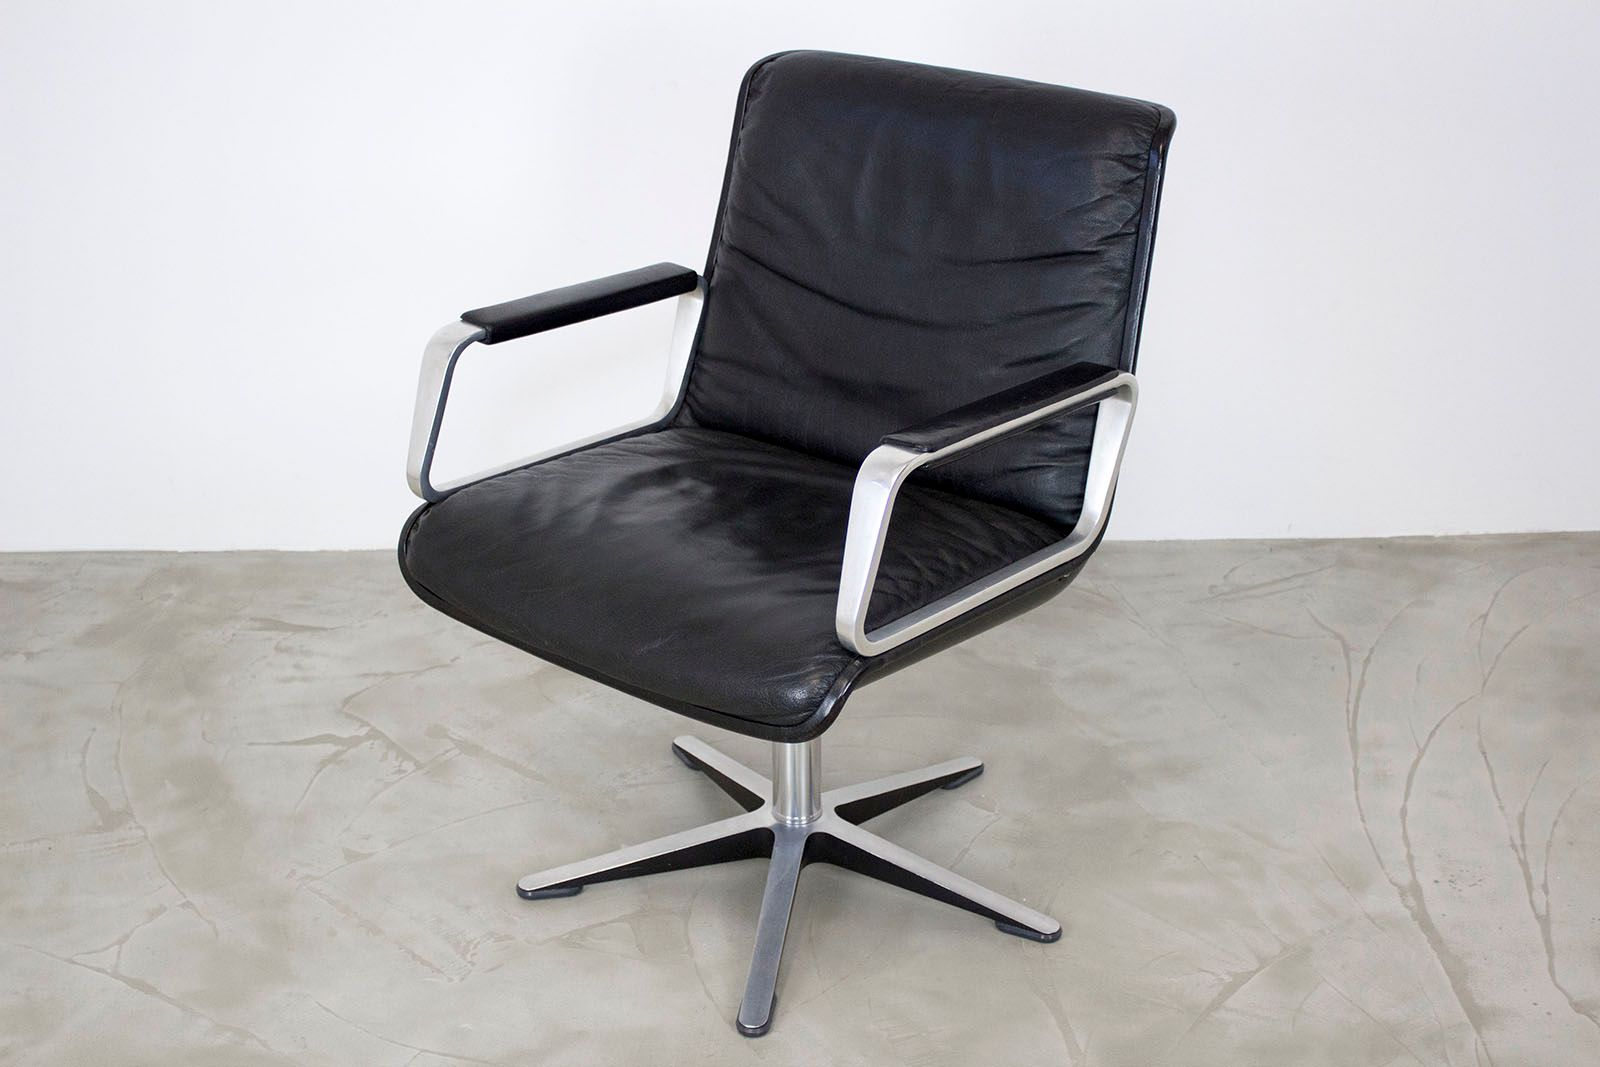 Delta 2000 Swivel Leather Office Armchair from Wilkhahn 1970s for